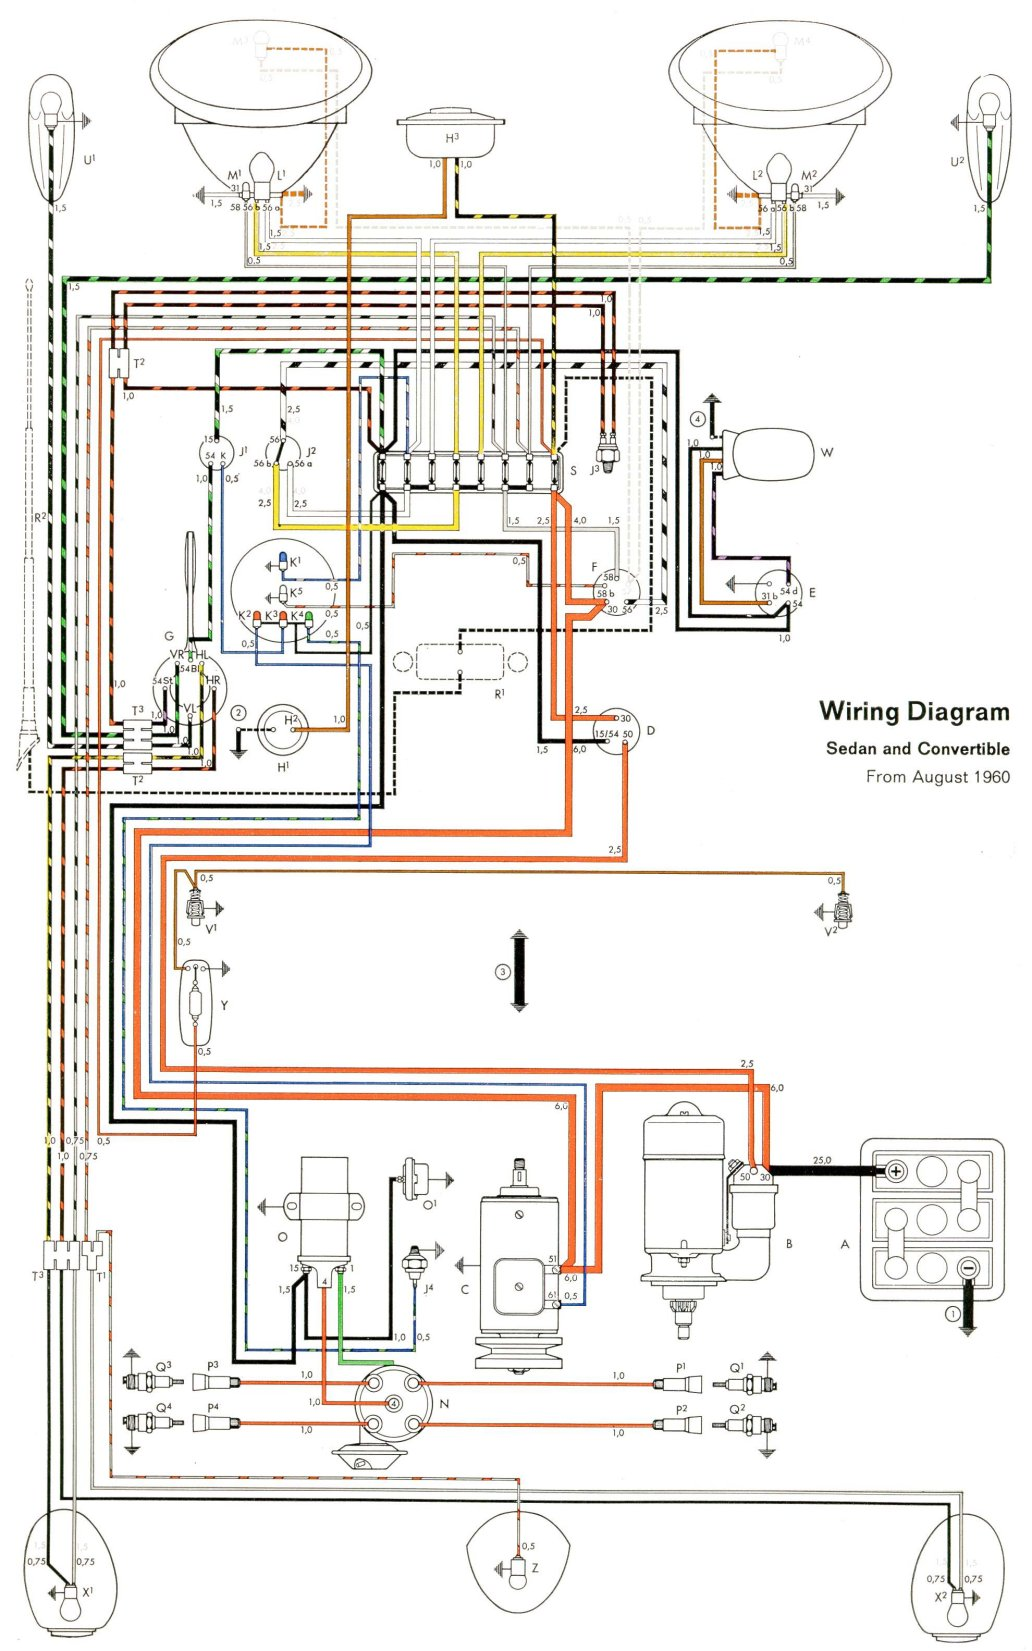 thesamba com type 1 wiring diagrams rh thesamba com vw beetle wiring diagram 1971 vw beetle wiring diagram 1972